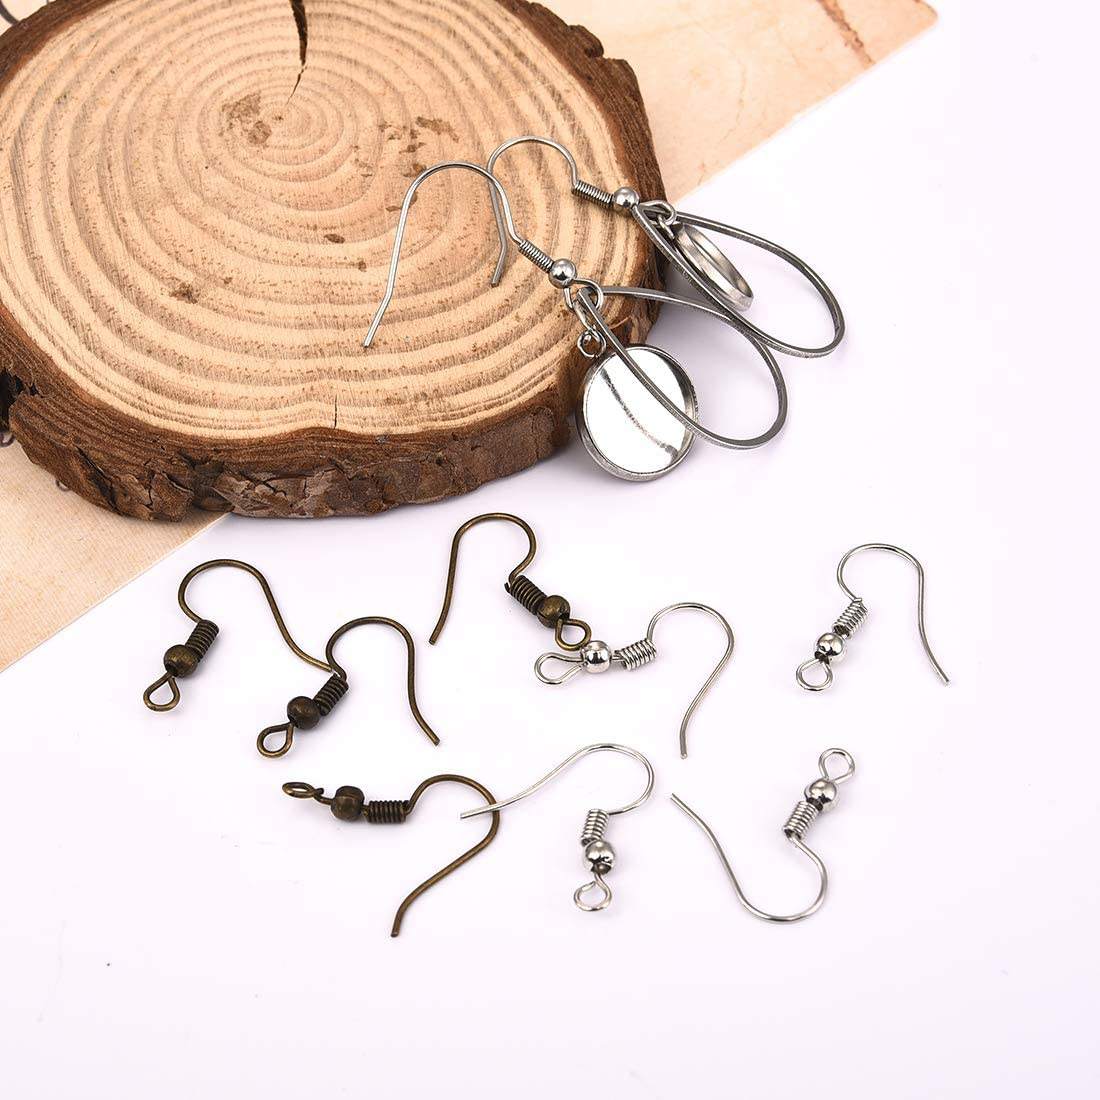 and 40Pcs Jump Rings Jewellery Making Kits Set OBSEDE 10m//32Feet 1.5mm Stainless Steel Cable Link Chain with 20Pcs Lobster Clasps